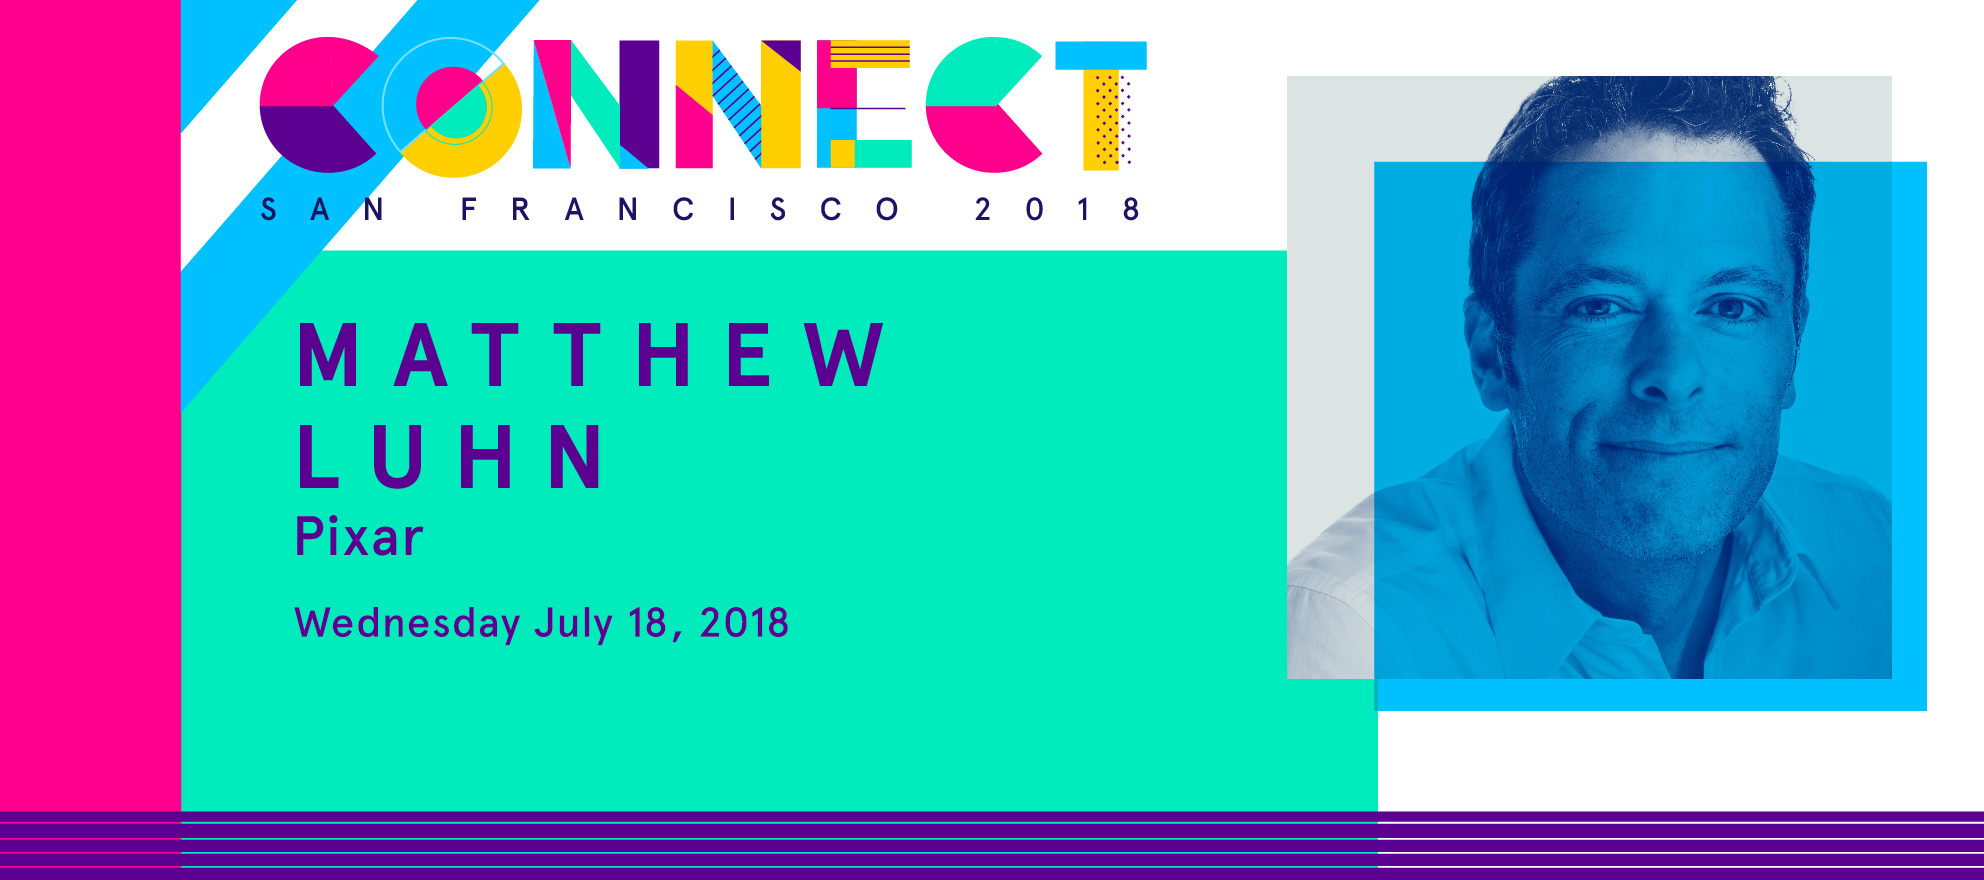 Connect The ICSF Speakers: Pixar's Matthew Luhn on leadership lessons from stories